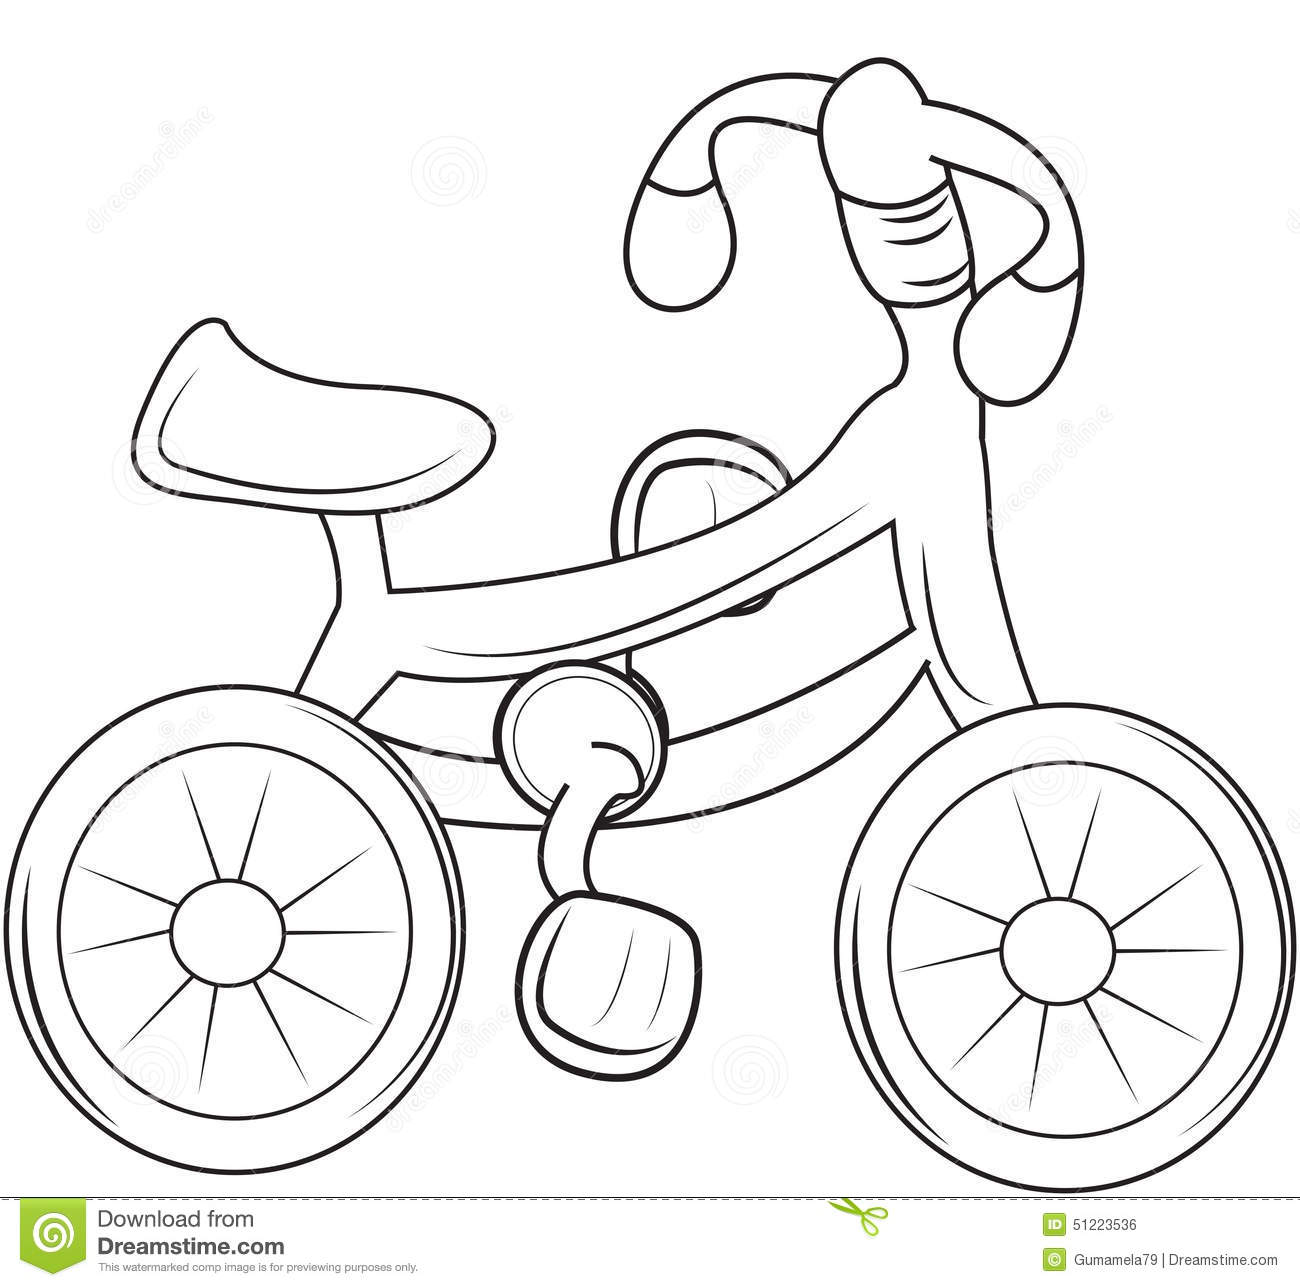 T ball coloring pages - Stock Illustration Bicycle Coloring Page Useful As Book Kids Image51223536 On Cartoon Baseball Tee Ball